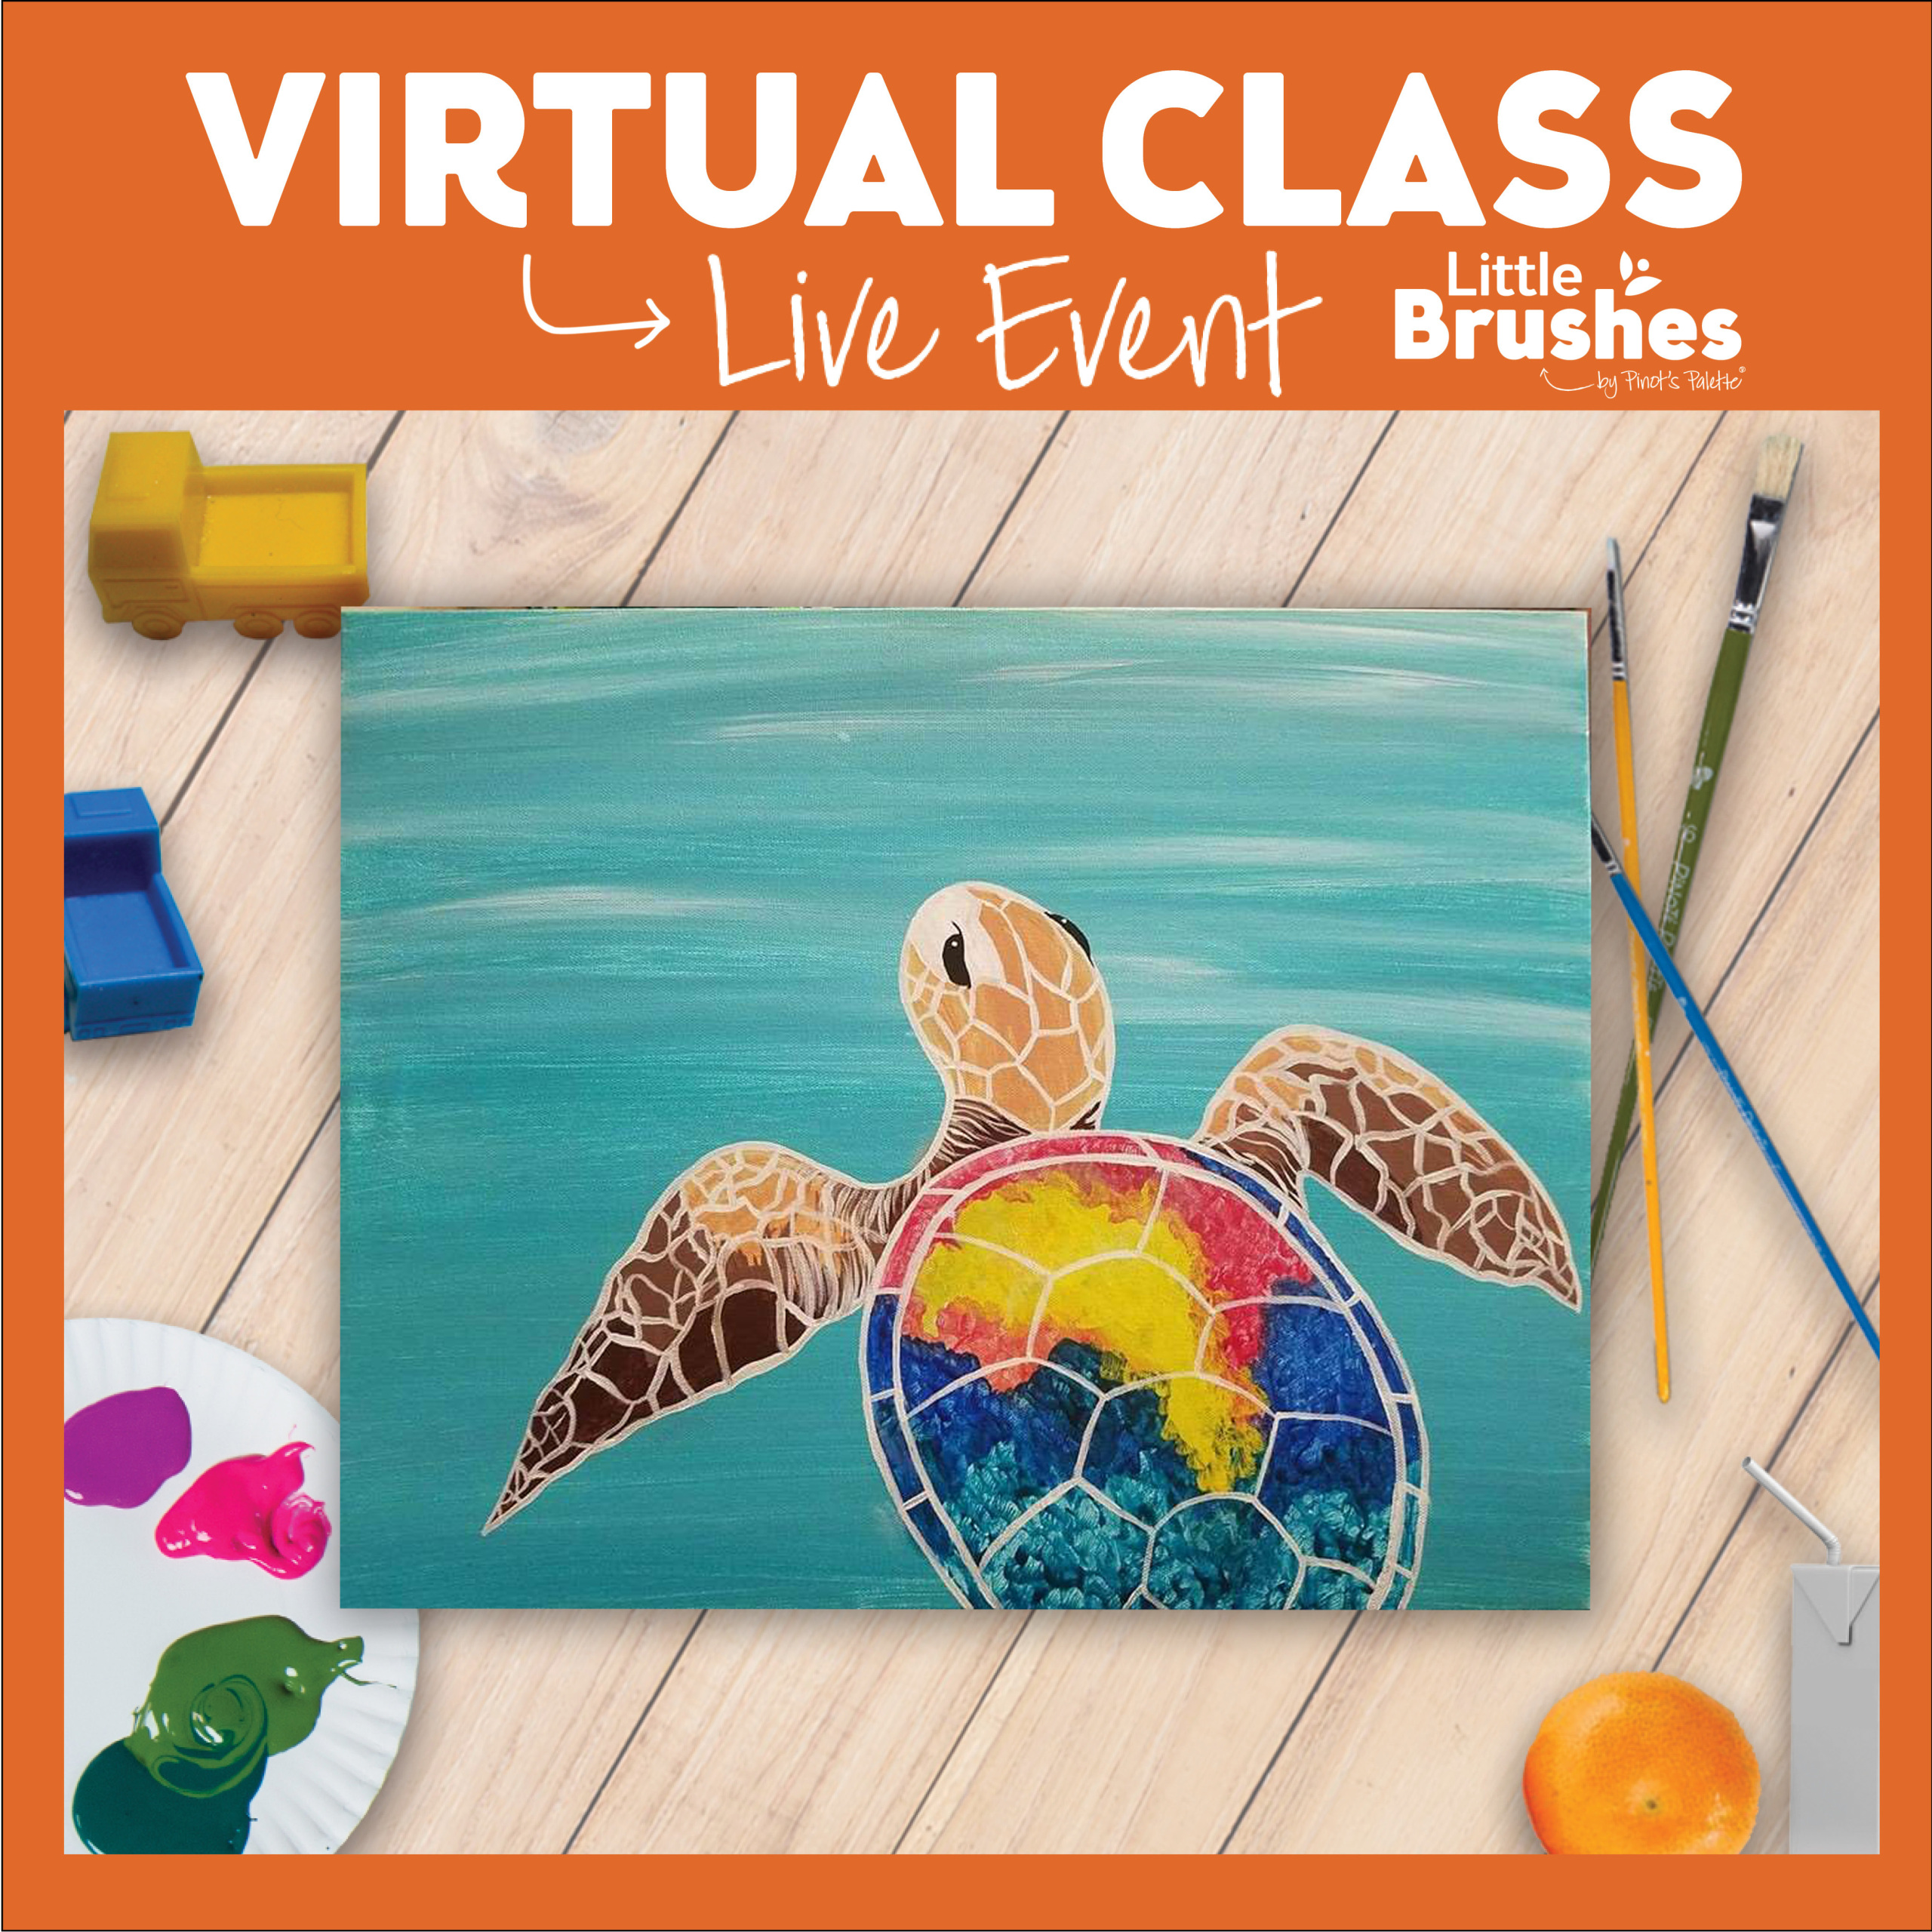 KIDS/FAMILY LIVE INTERACTIVE VIRTUAL CLASS